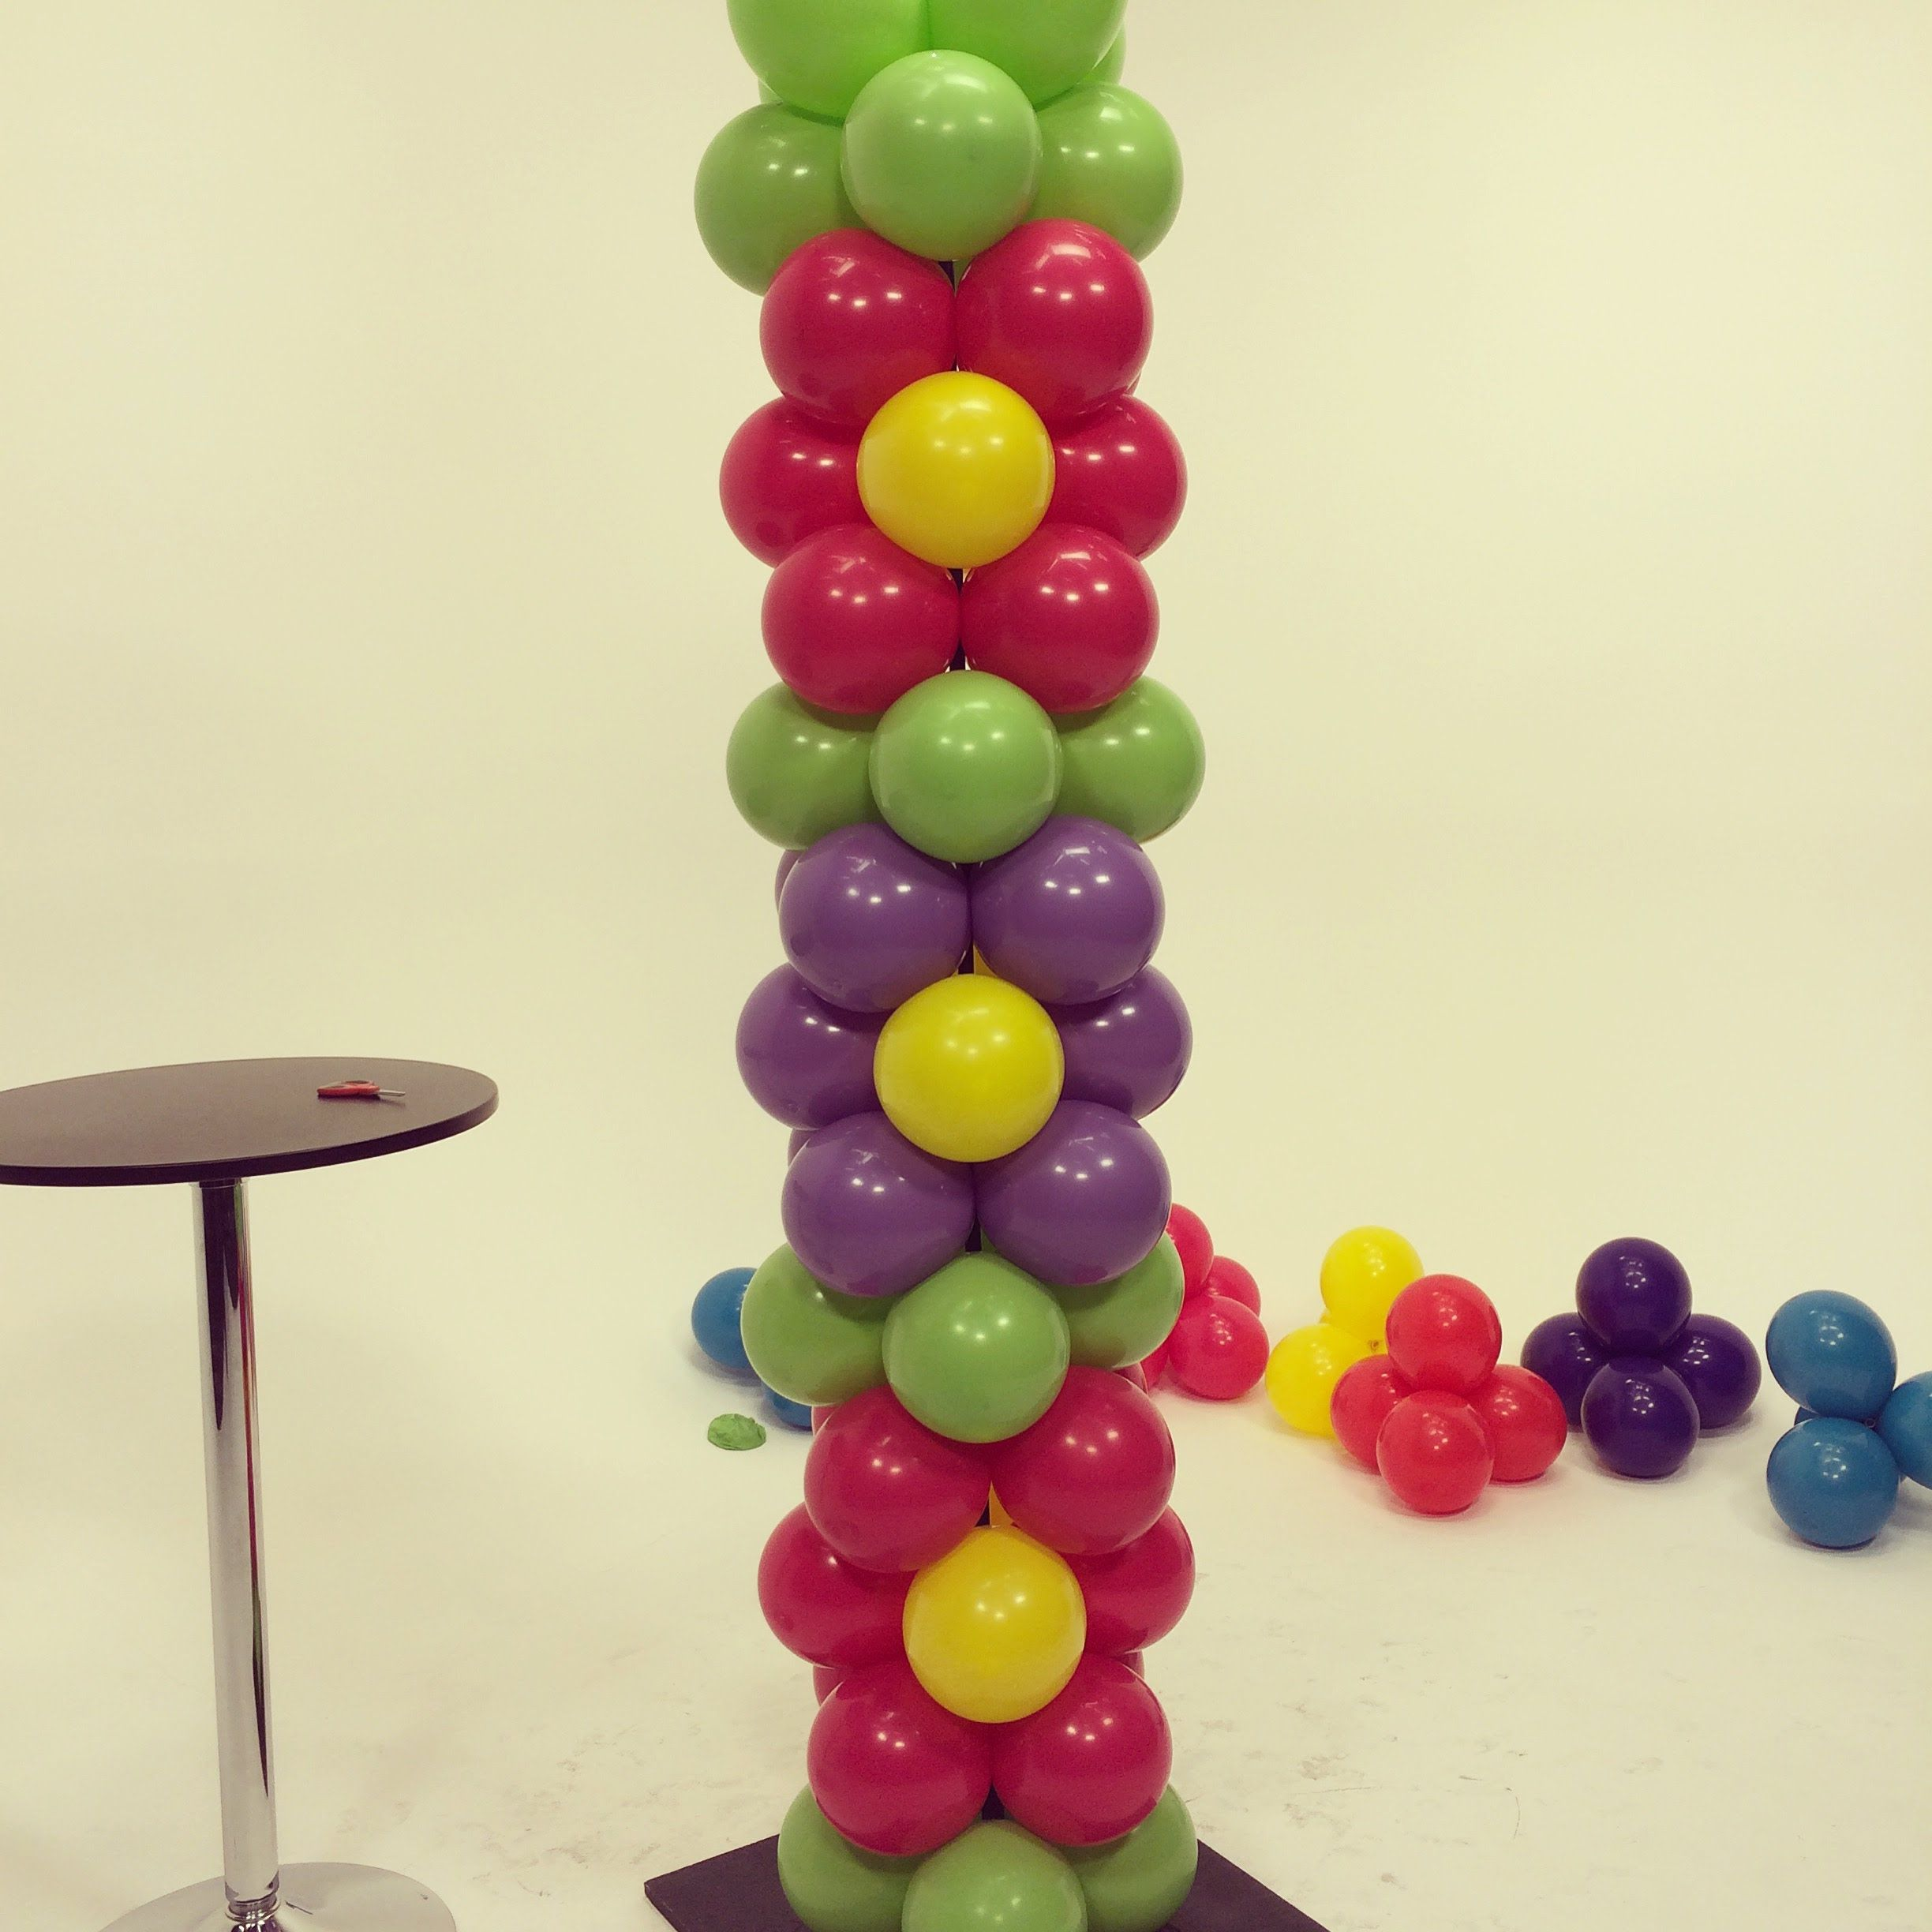 Balloon Flower Wall Decoration : Balloon flower power tower diy project step by